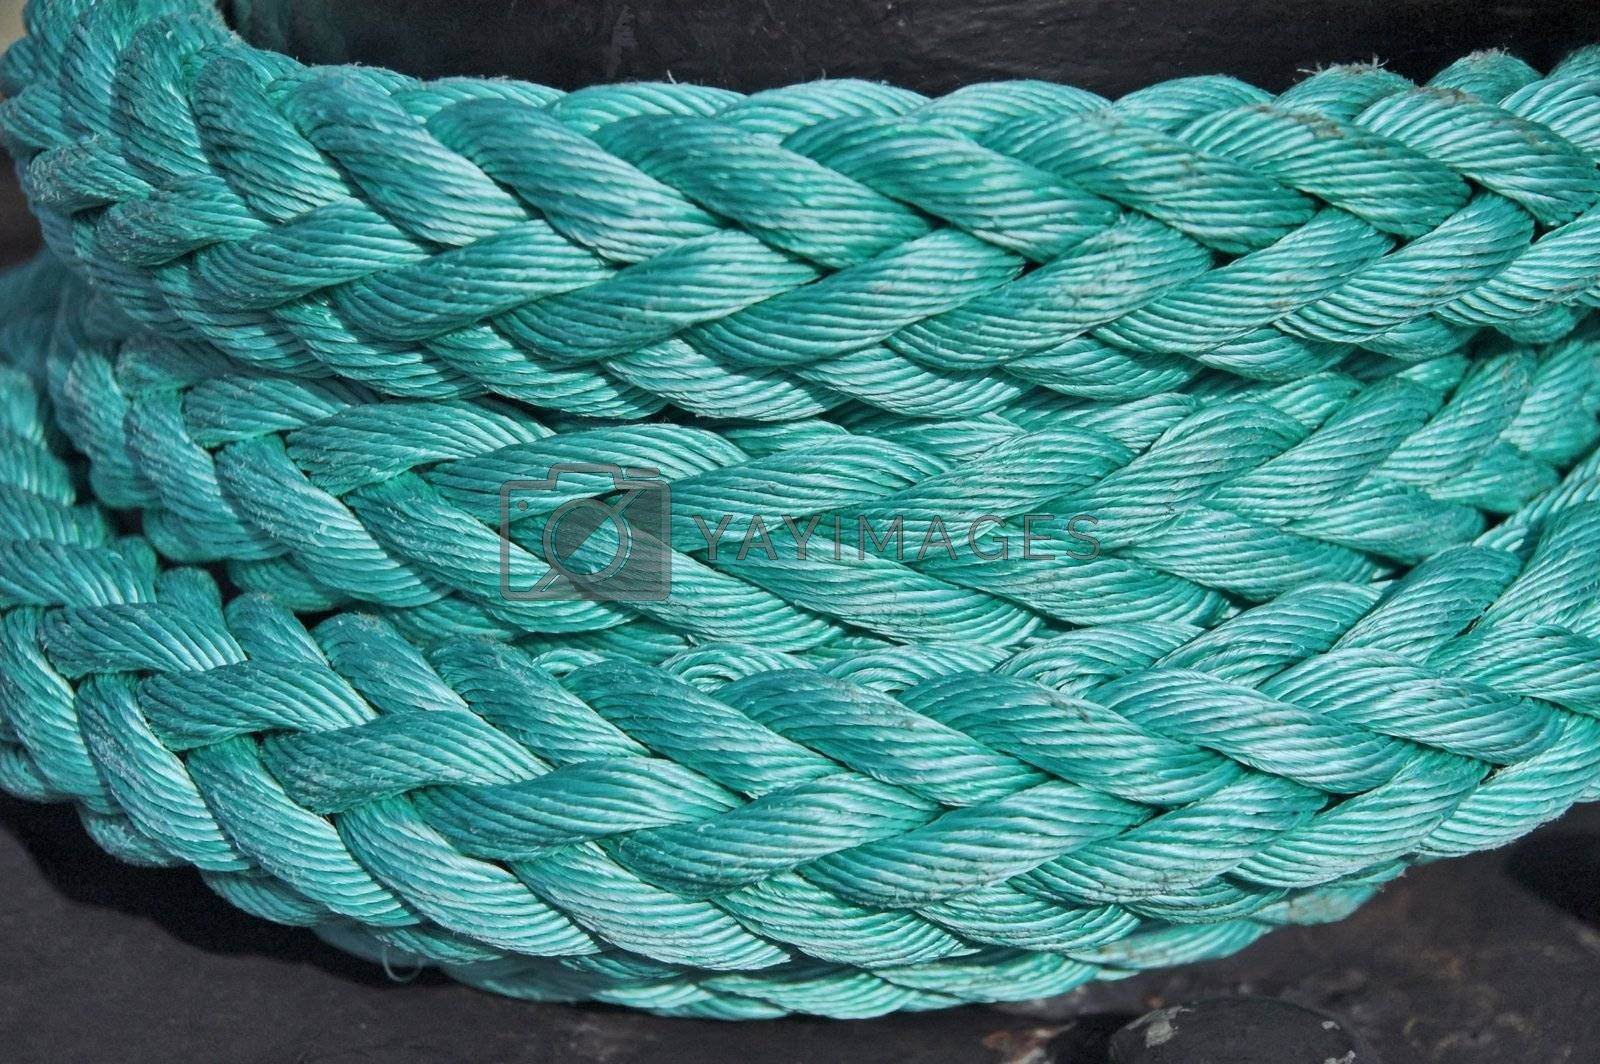 Mooring bollard with nautical rope knotted on it